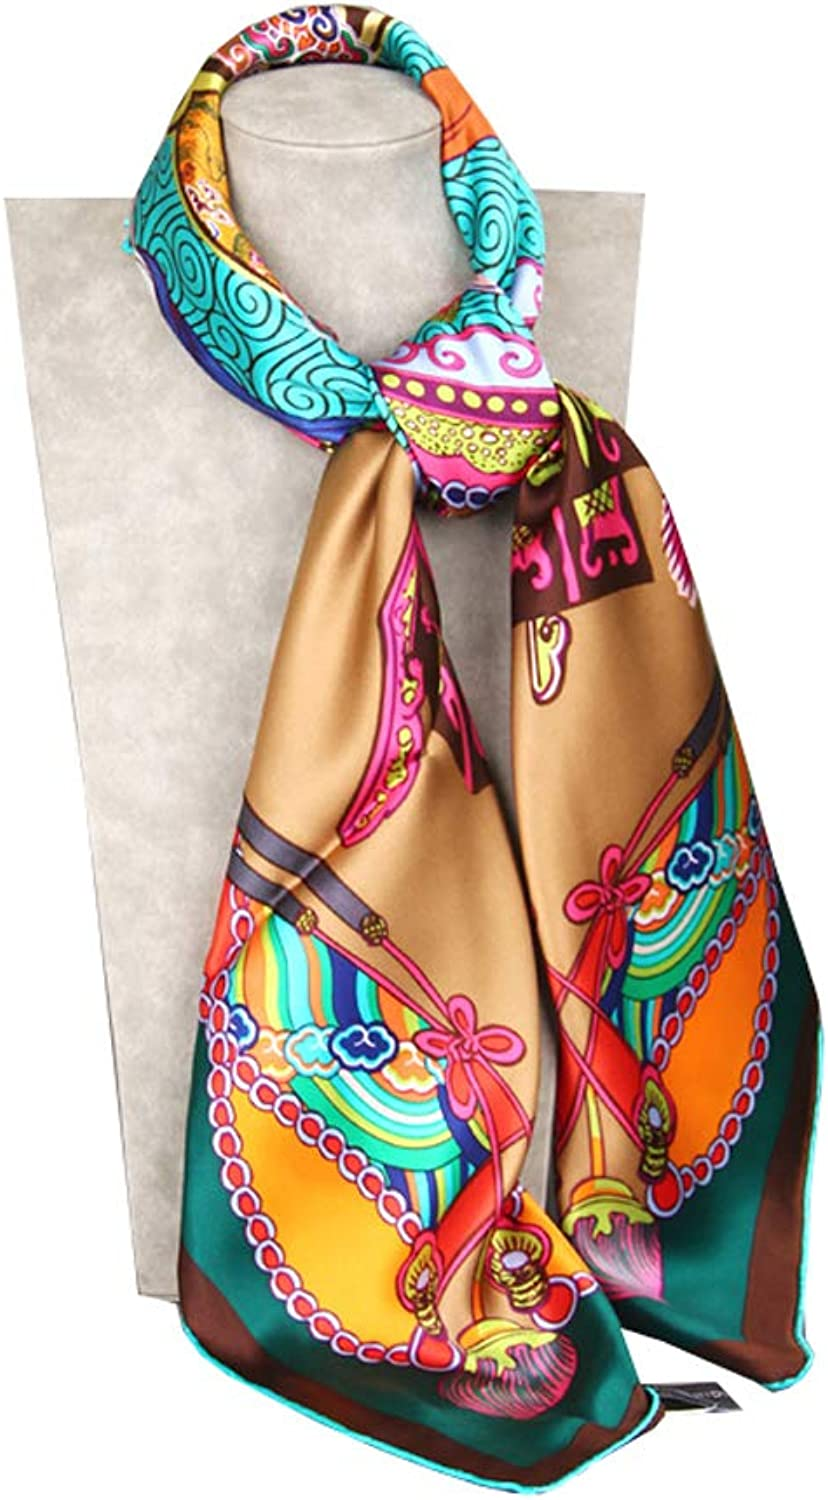 Hong Tai Yang Ms. Scarf Silk Print Large Square Scarf Shawl Silk Scarf The Most Beautiful Gift (color   C)